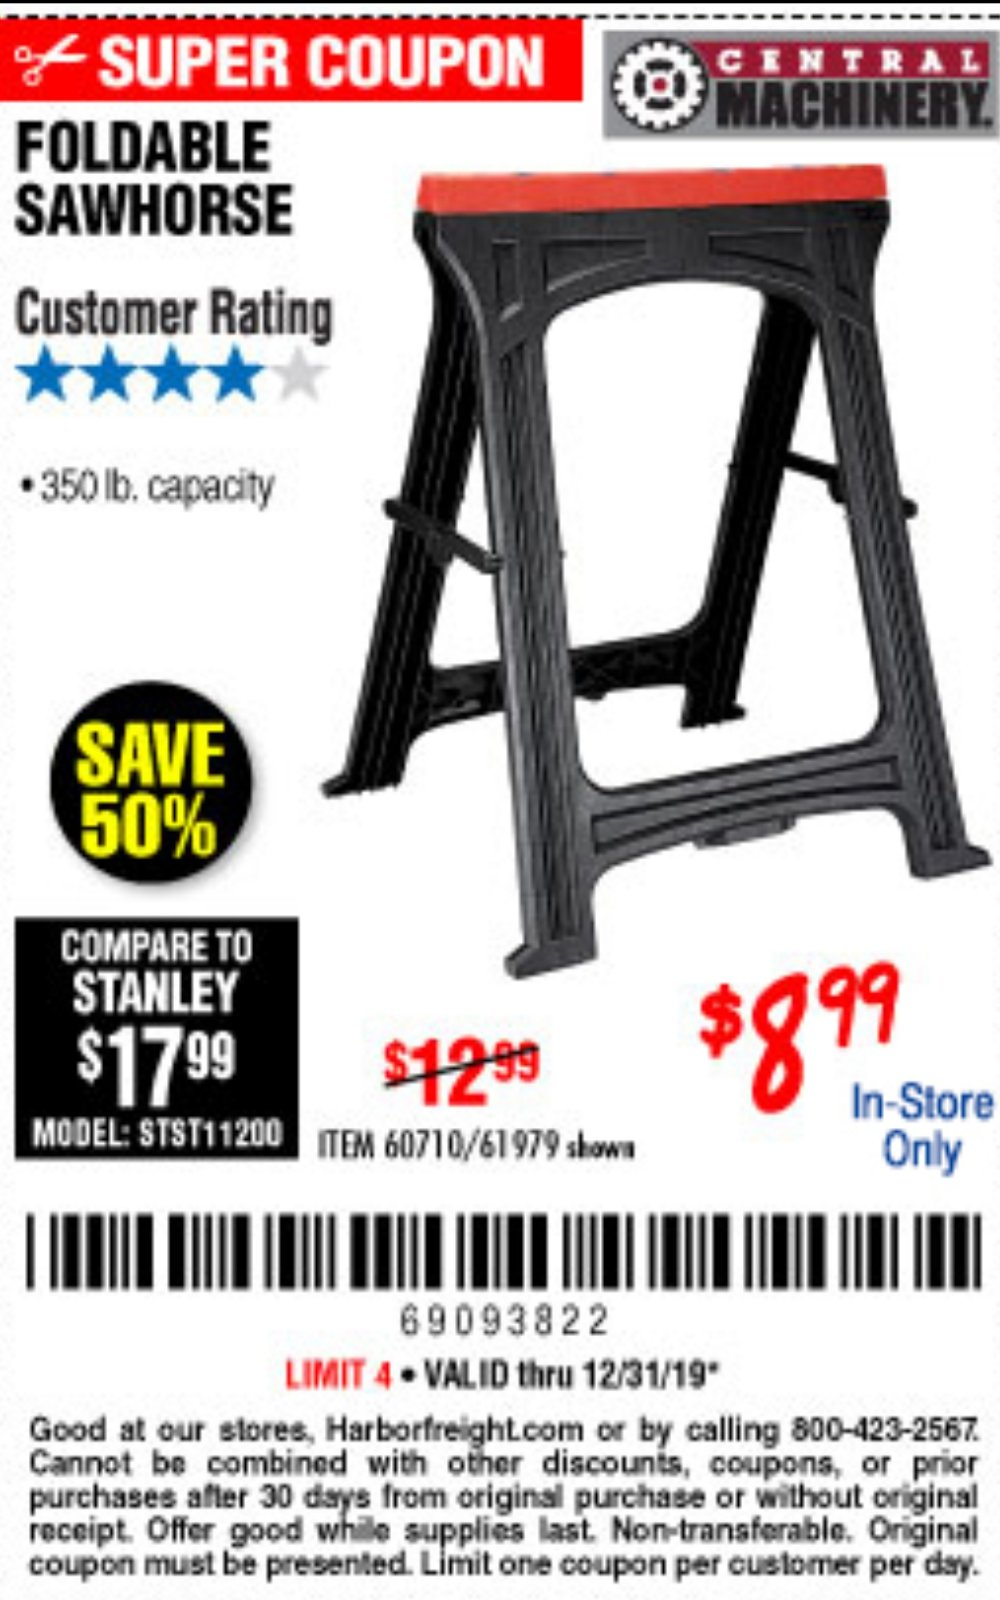 Harbor Freight Coupon, HF Coupons - Foldable Sawhorse